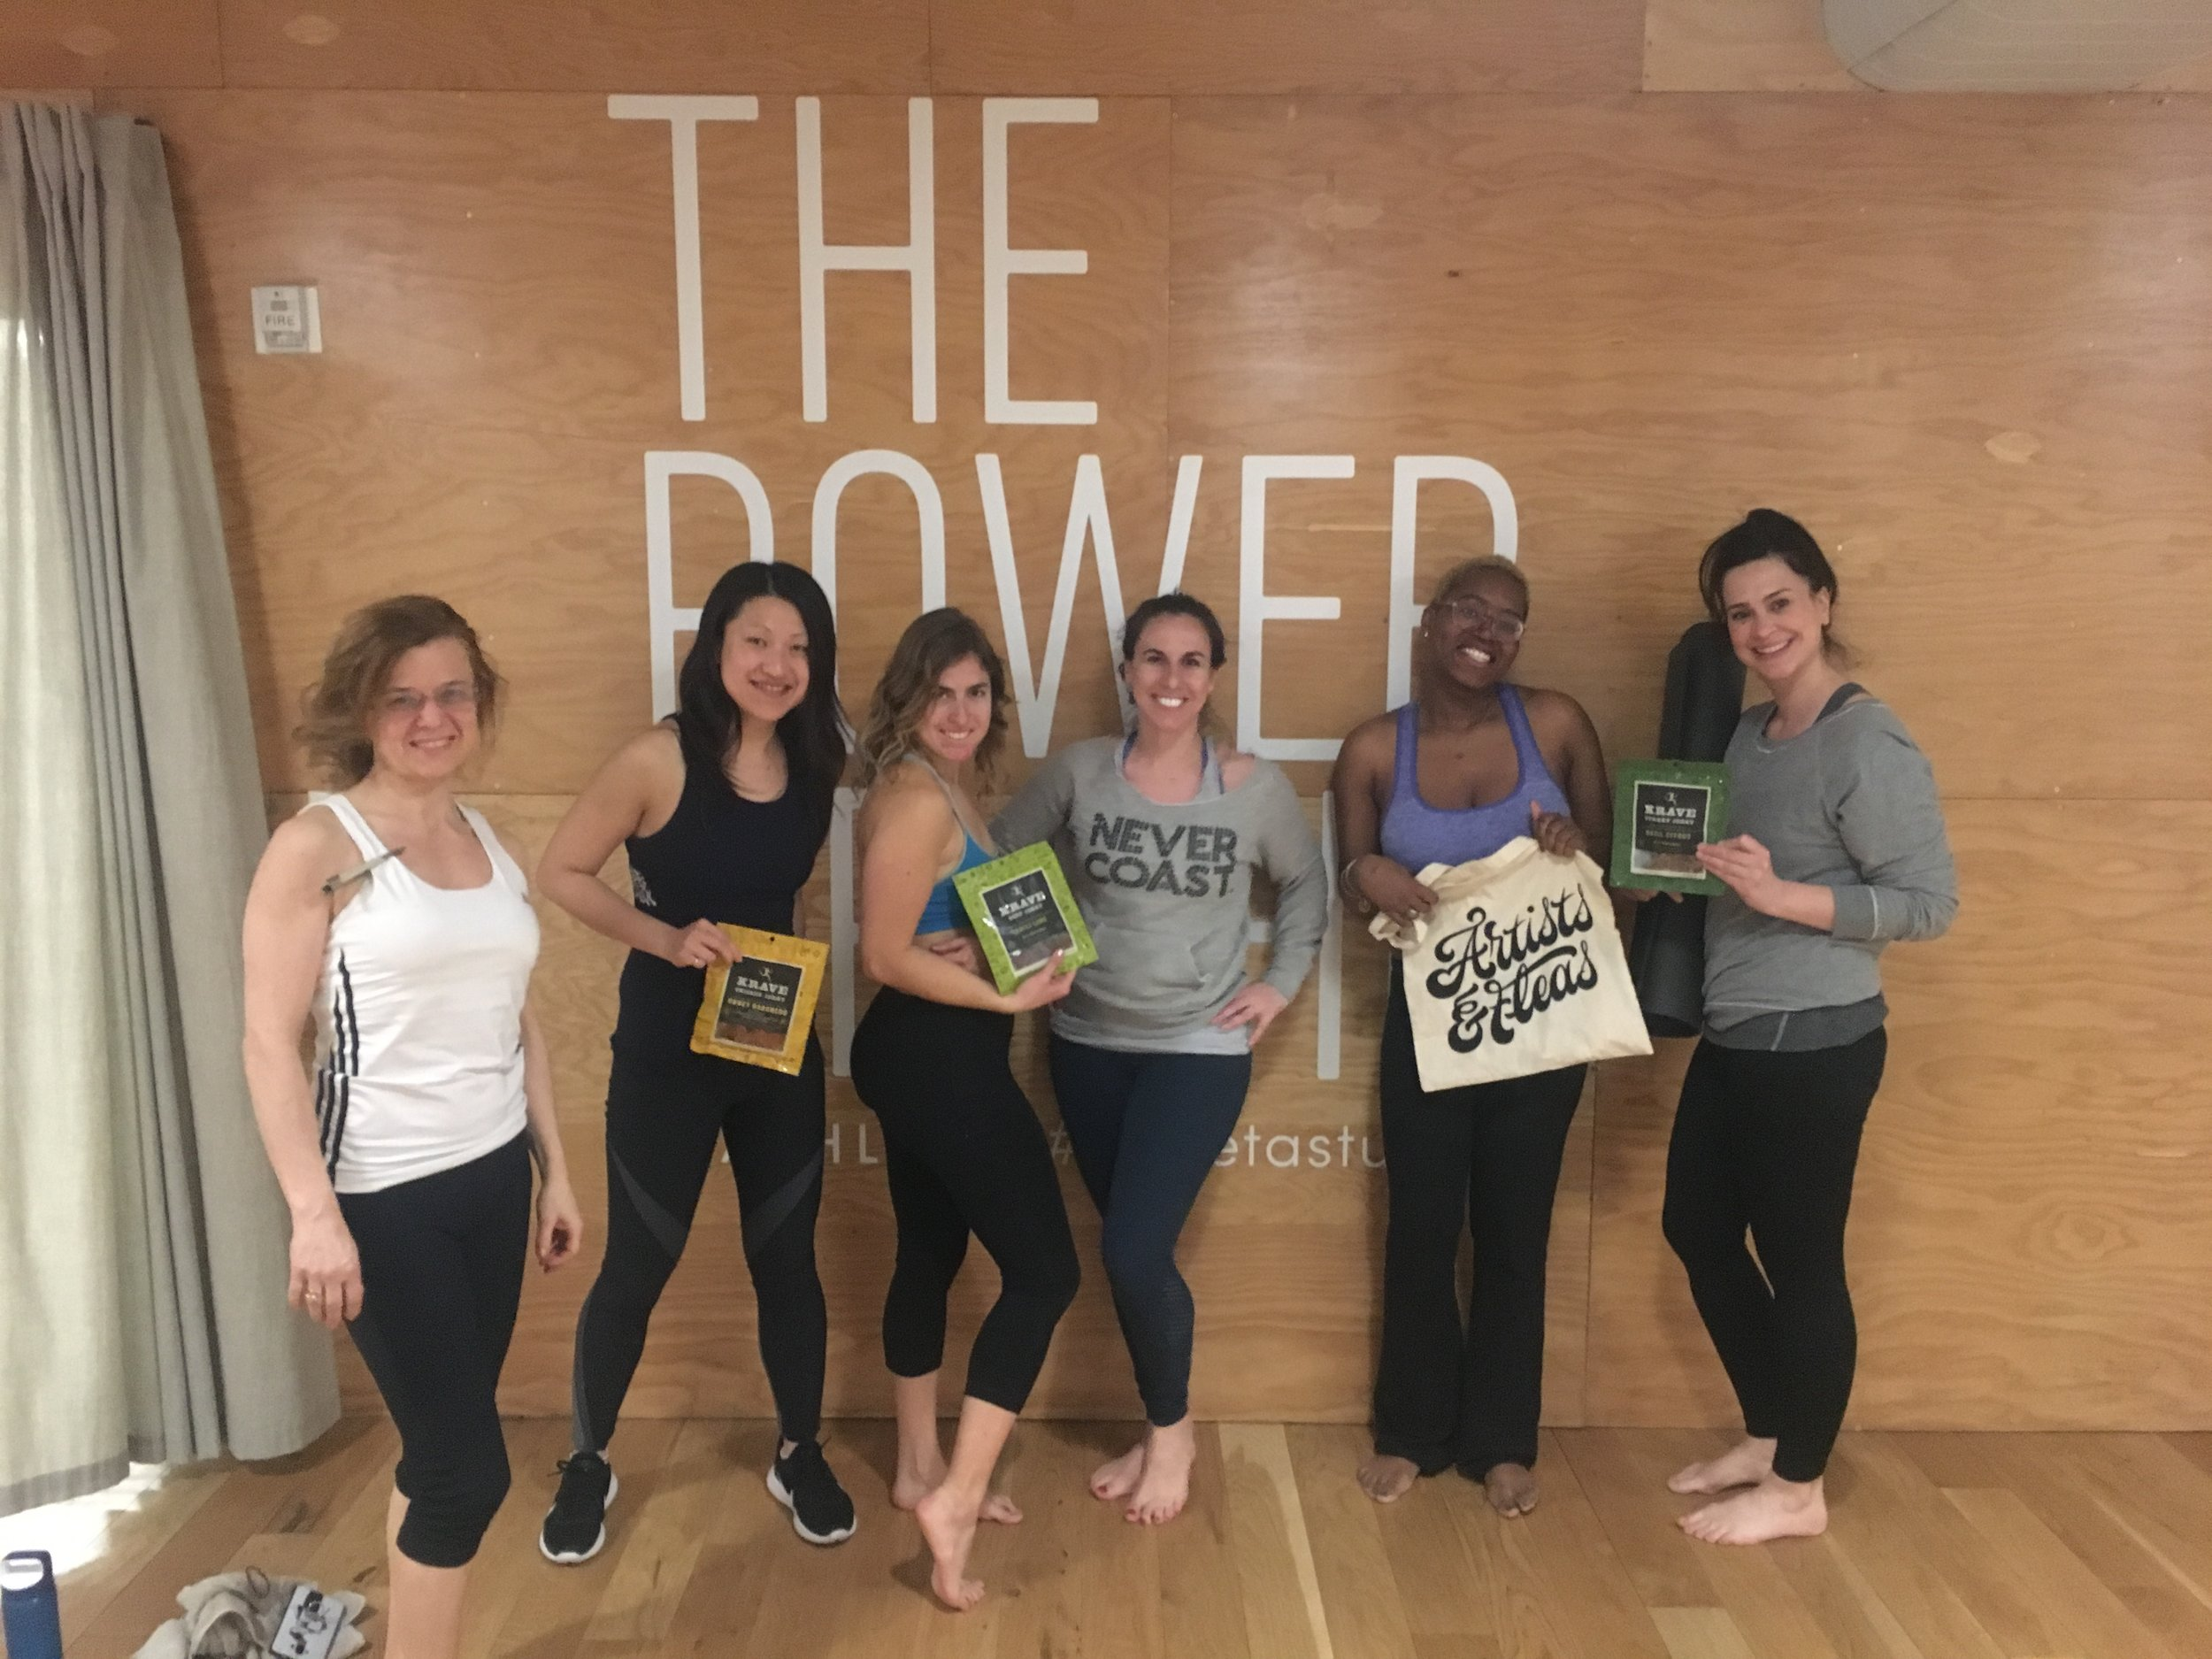 What a great crew! For March, enjoy Krave Jerky after each class!